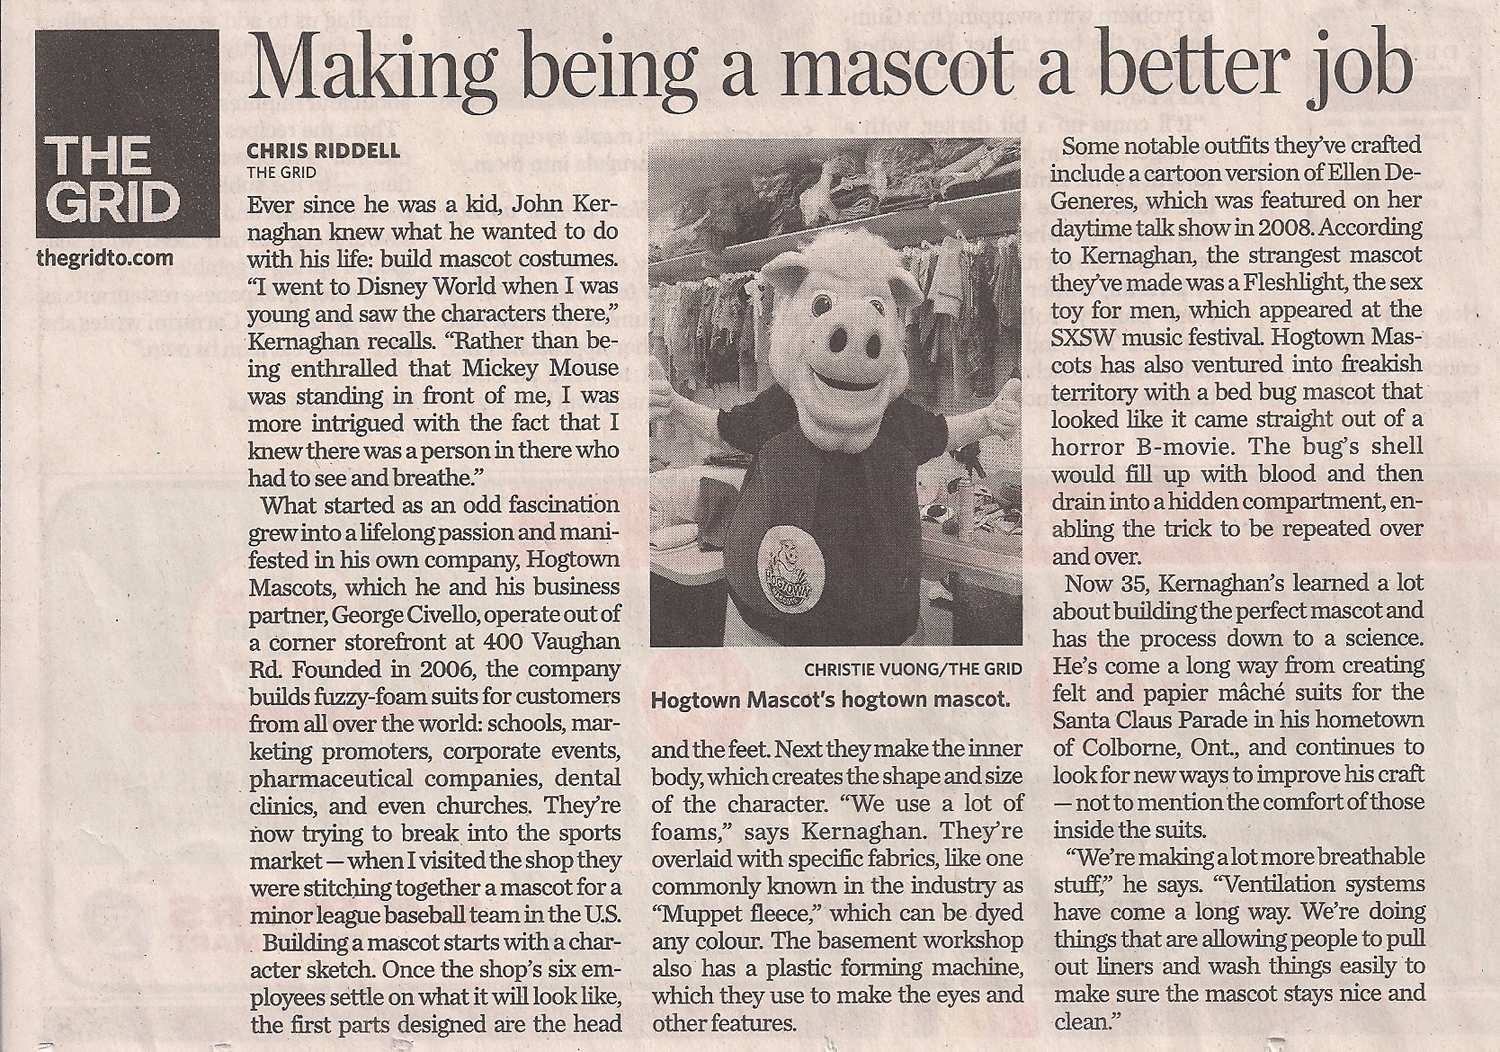 Hogtown_Mascots_Toronto_Star_March_2013 mascot costume makers In the Media GridTorontoStarMarch2013